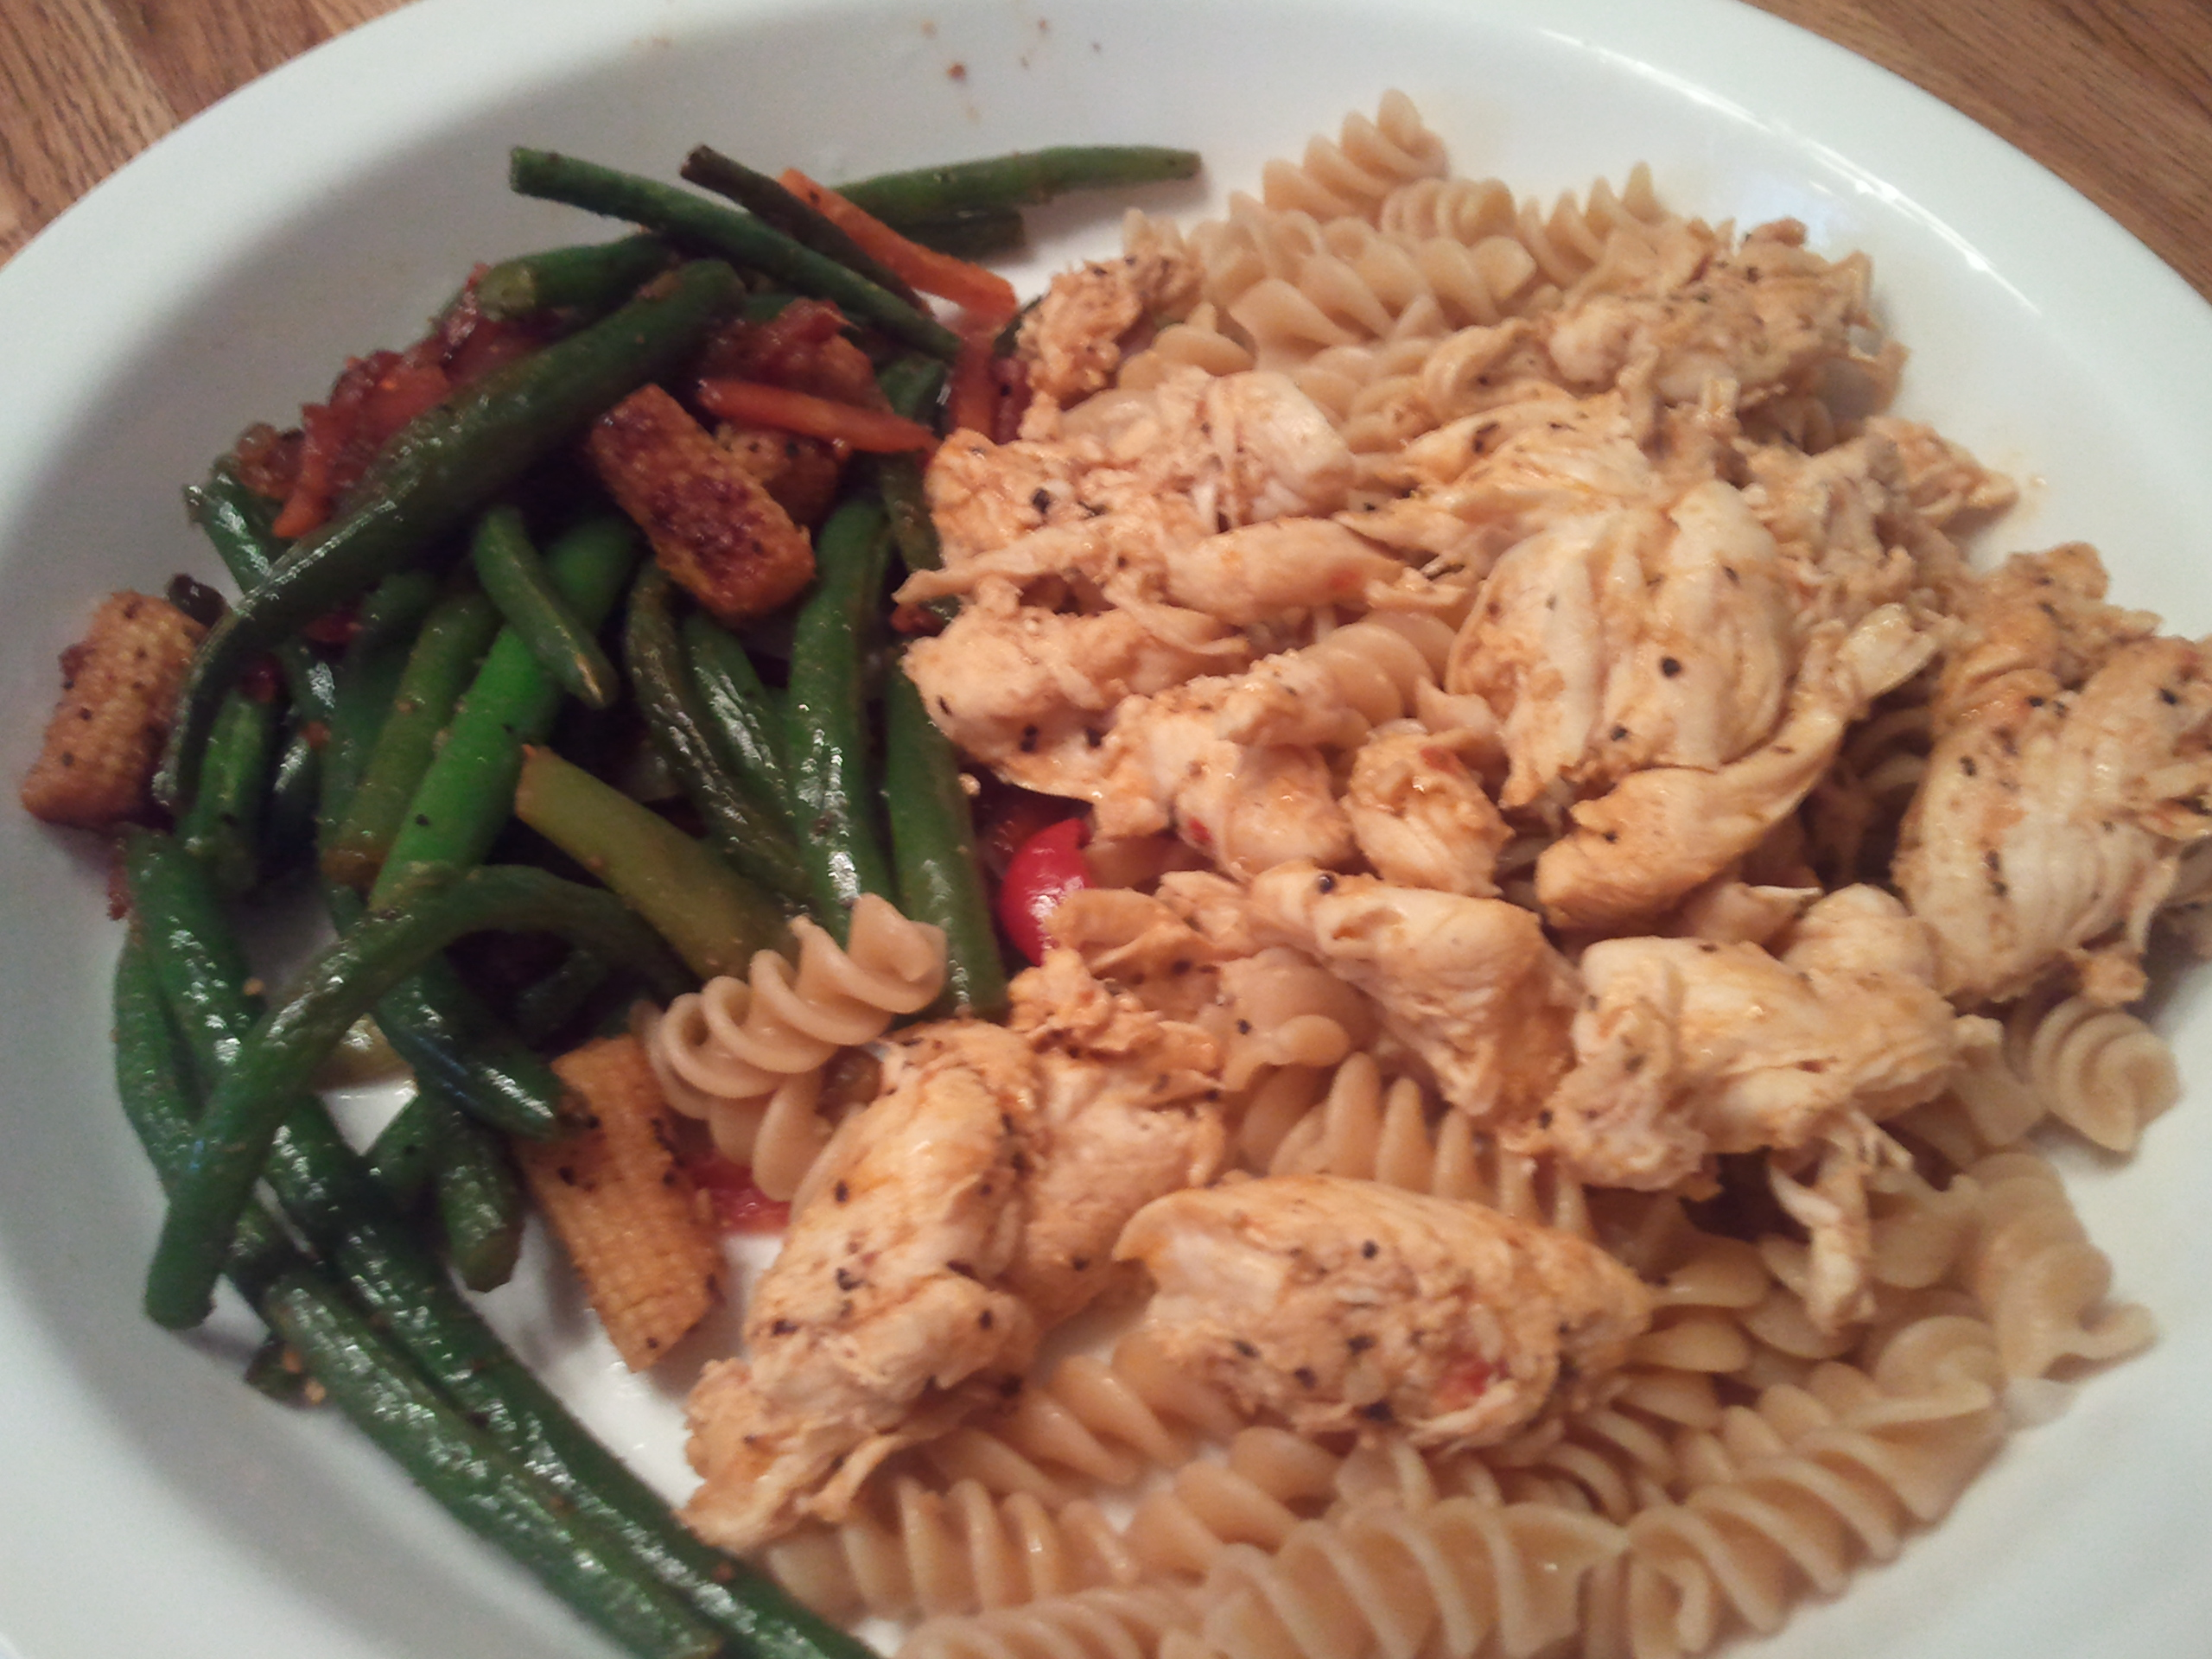 Wichita :: Chicken over noodles, with asian style green beans